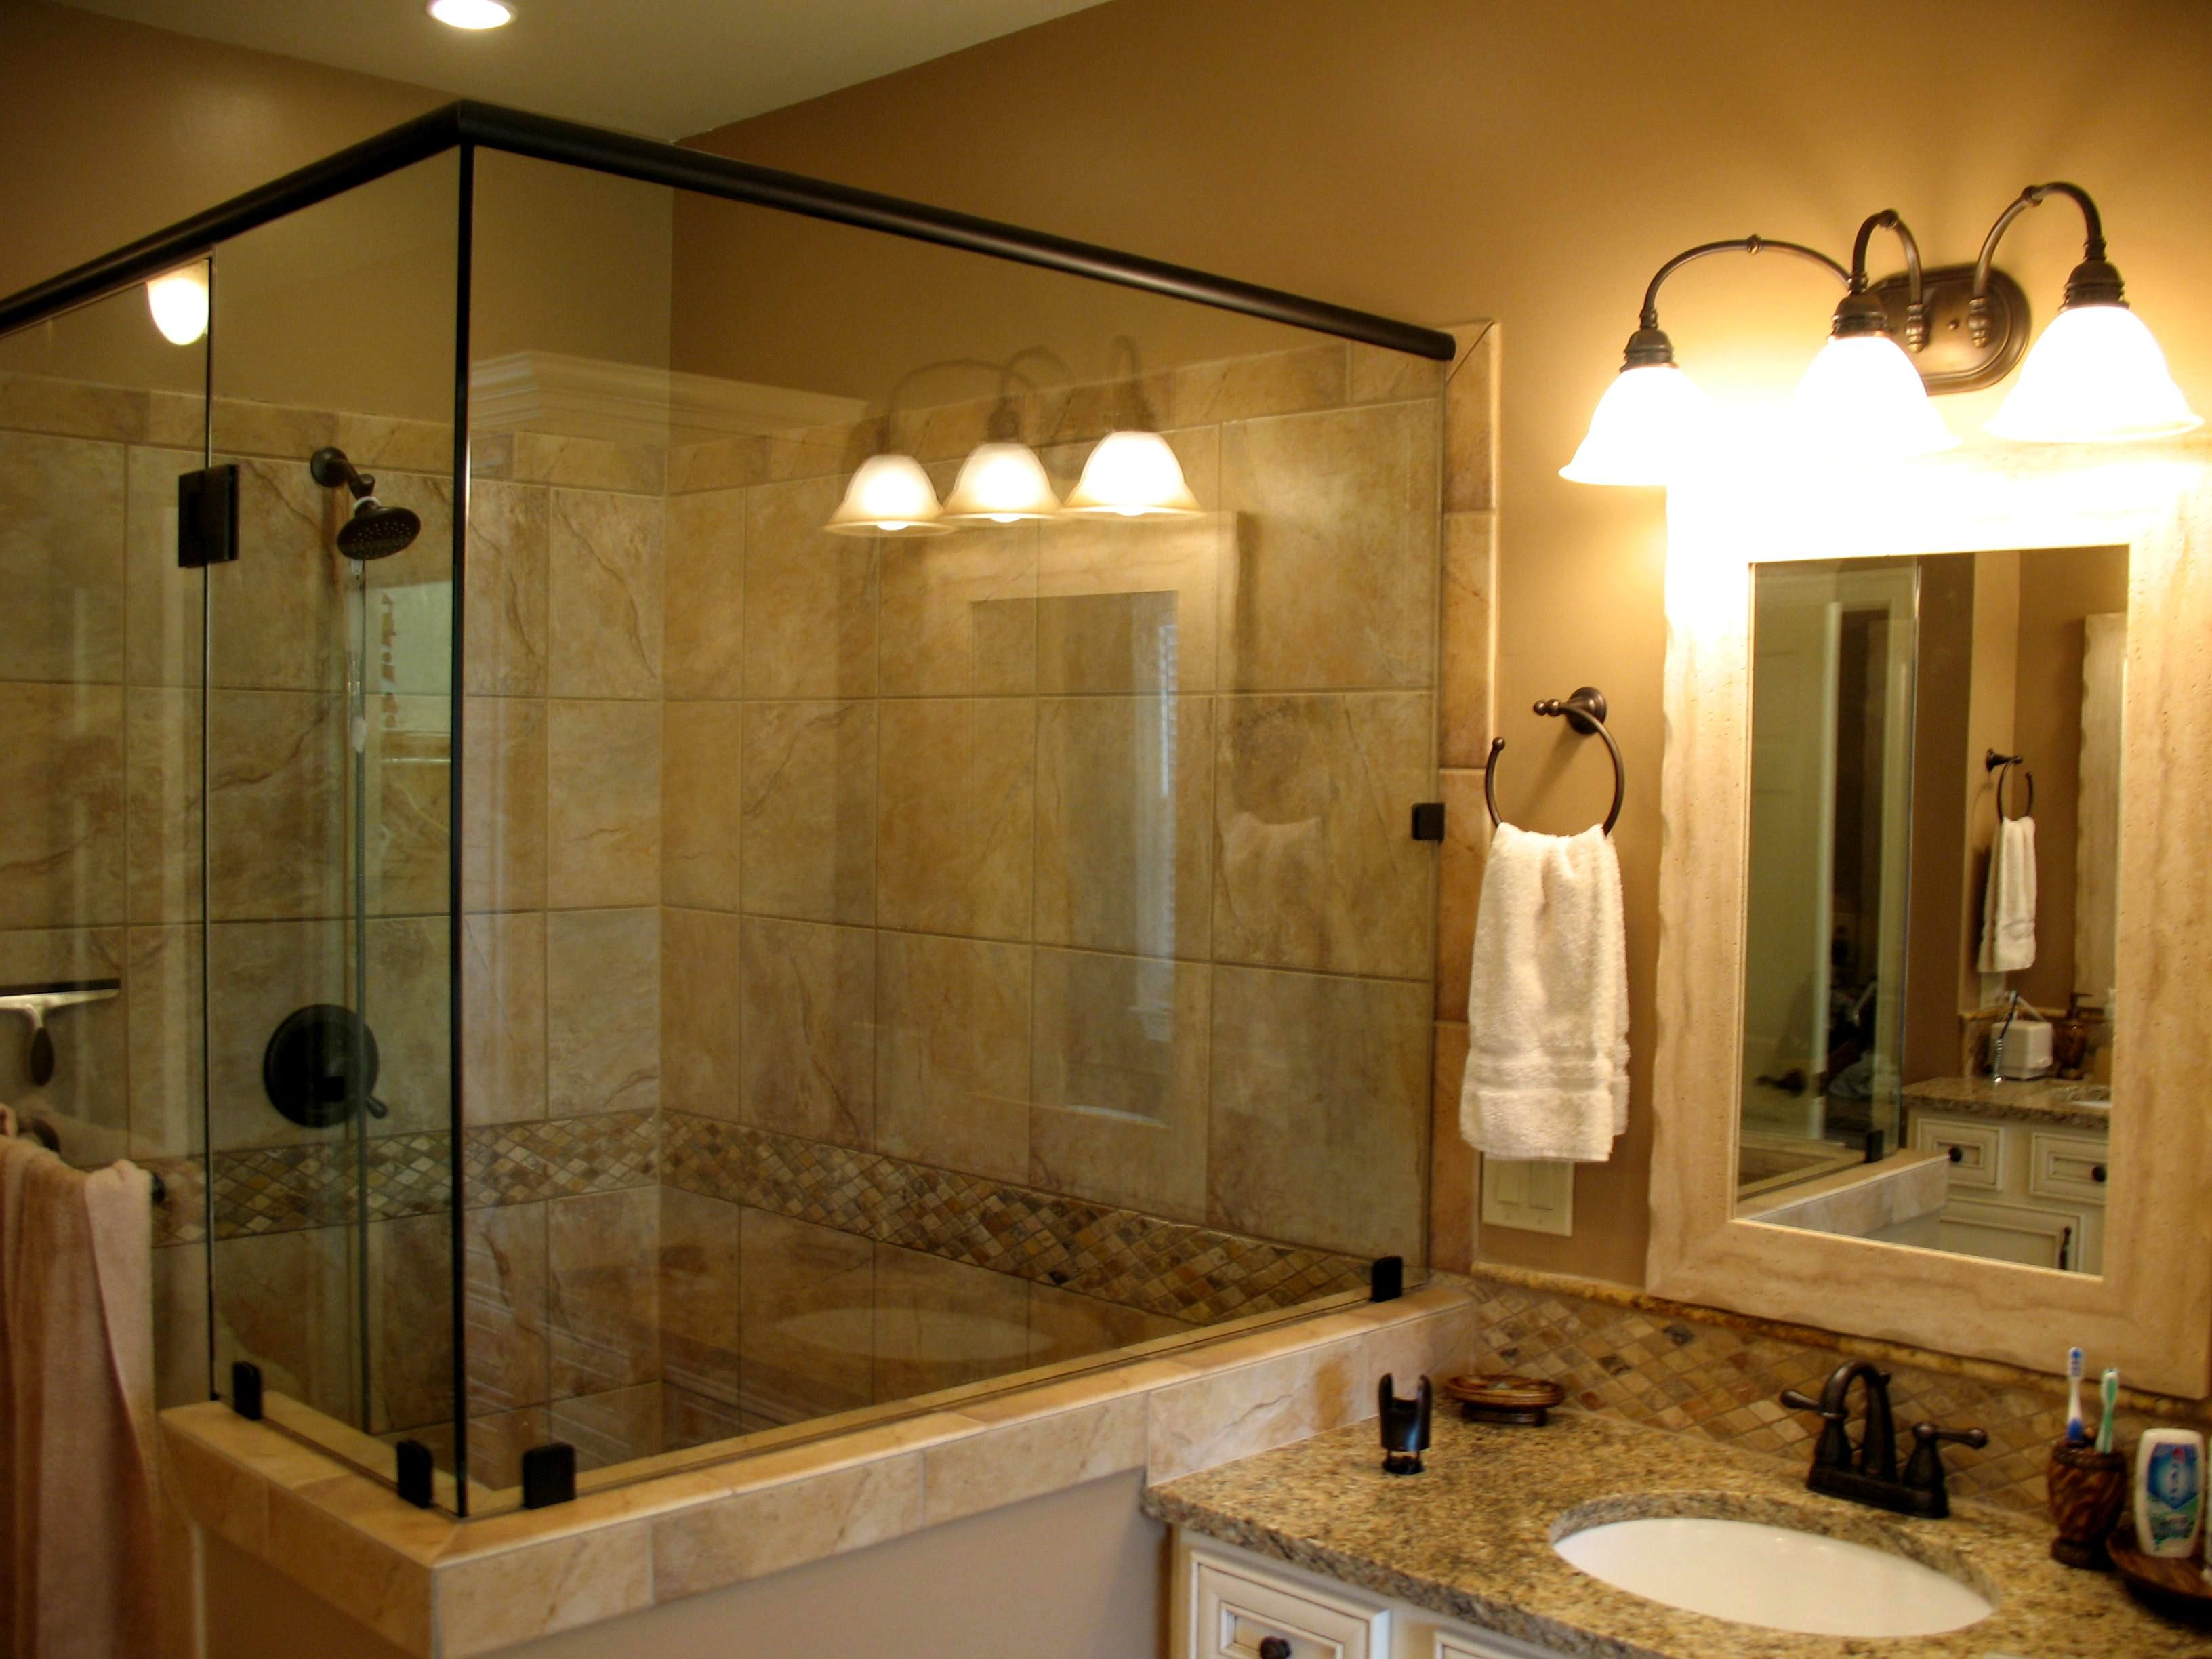 bathroom remodel designer master bathroom shower ideas to get ideas how to redecorate your bathroom - Home Remodel Designer